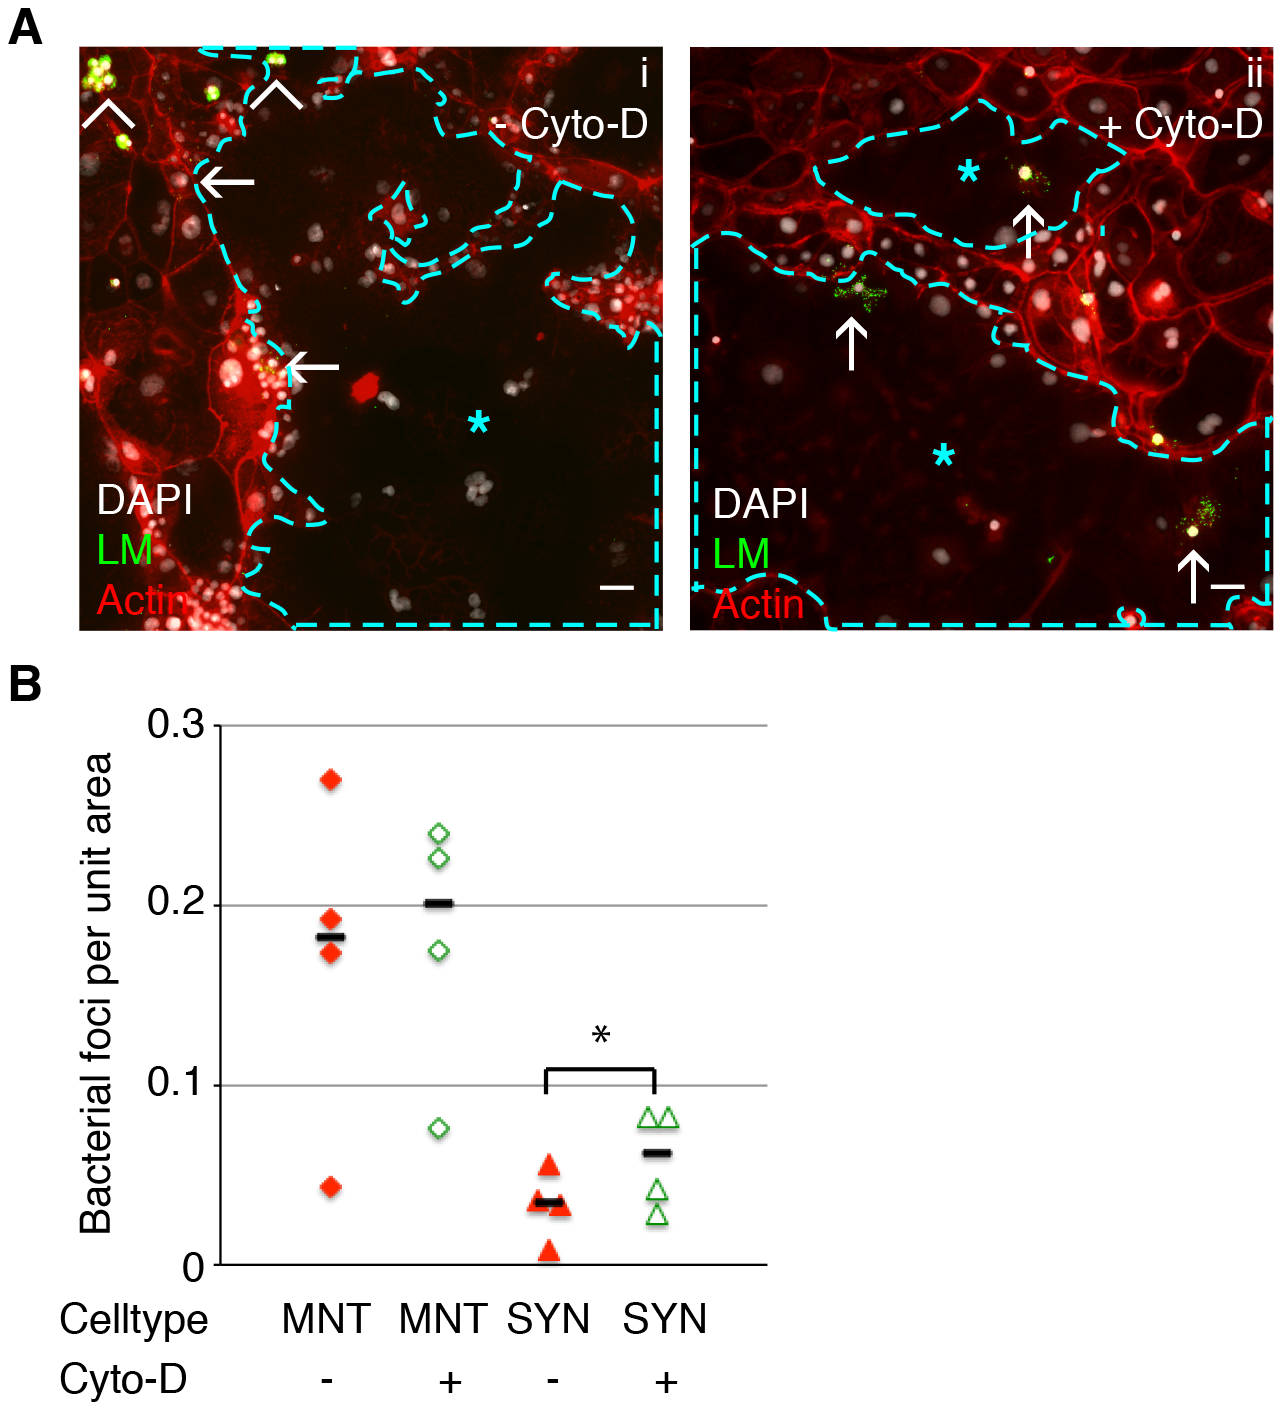 Cell-to-cell spread of <i>L. monocytogenes</i> (LM) into mouse syncytiotrophoblast (SYN) is enhanced by syncytial actin network disruption.